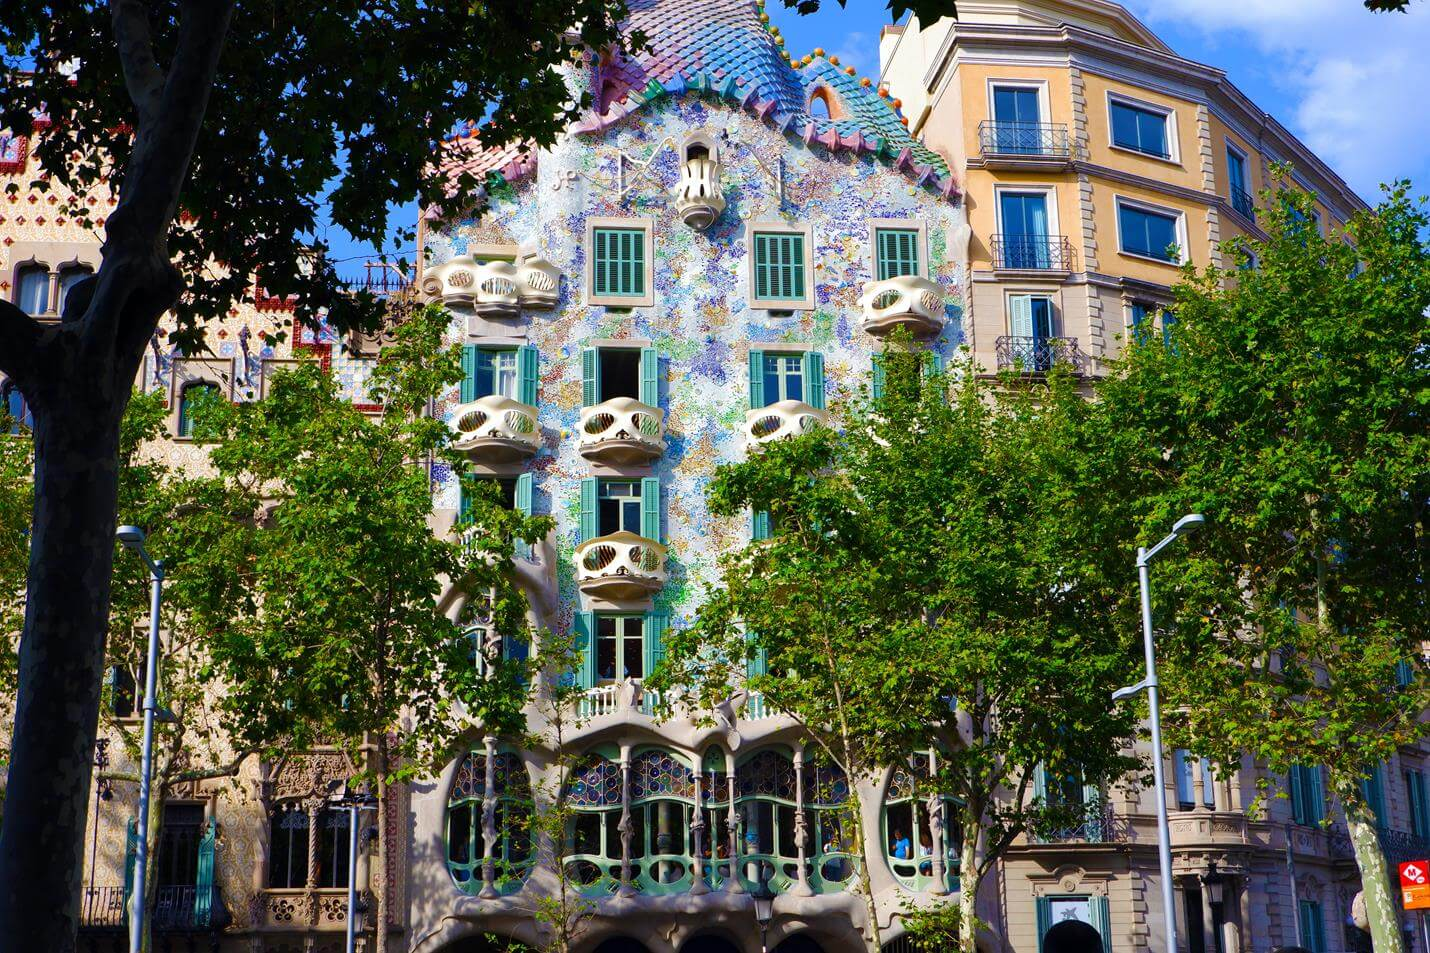 Casa Batlló in Barcelona - Top